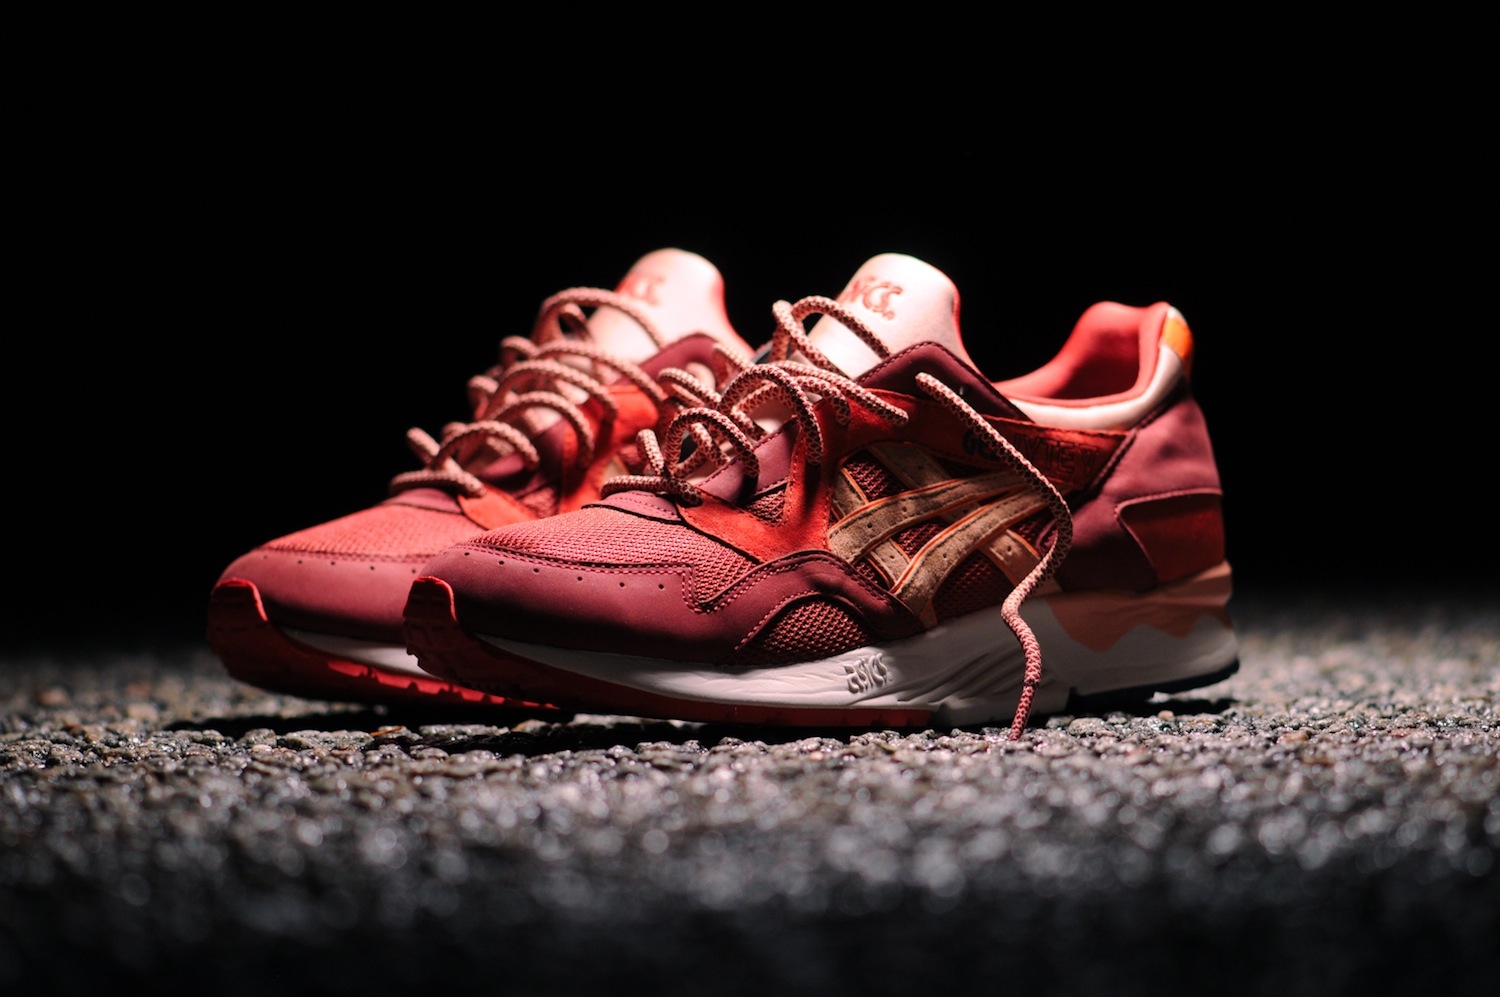 Ronnie Fieg X ASICS Gel-Lyte V  Volcanoes  - Official Images   Release Info 8edbc4c00c7e